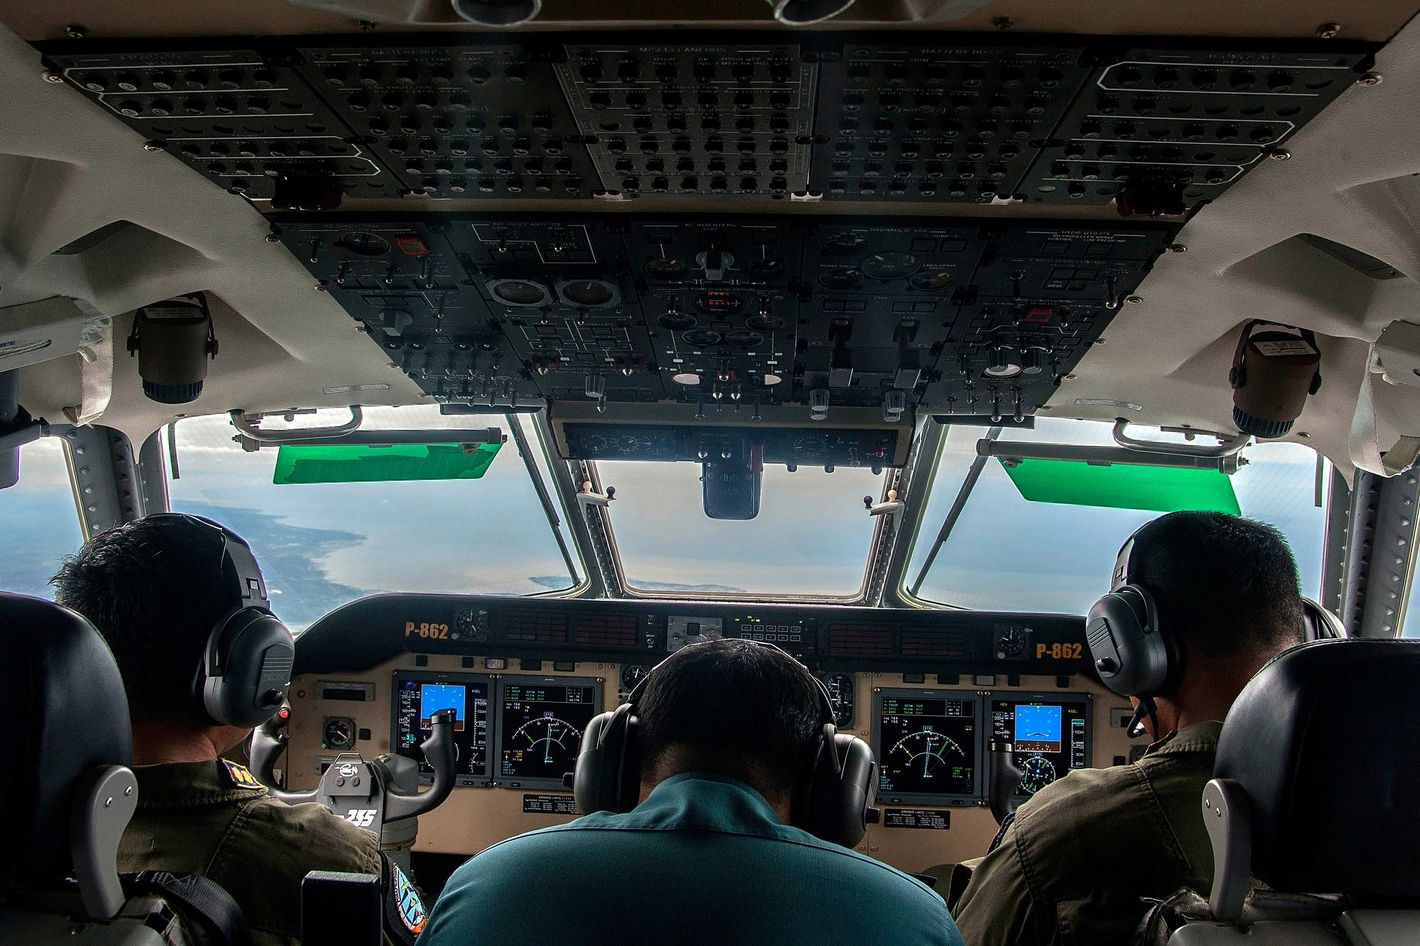 AirAsia Flight 8501 Crash Reveals the Dangers of Putting Machines in the Driver's Seat